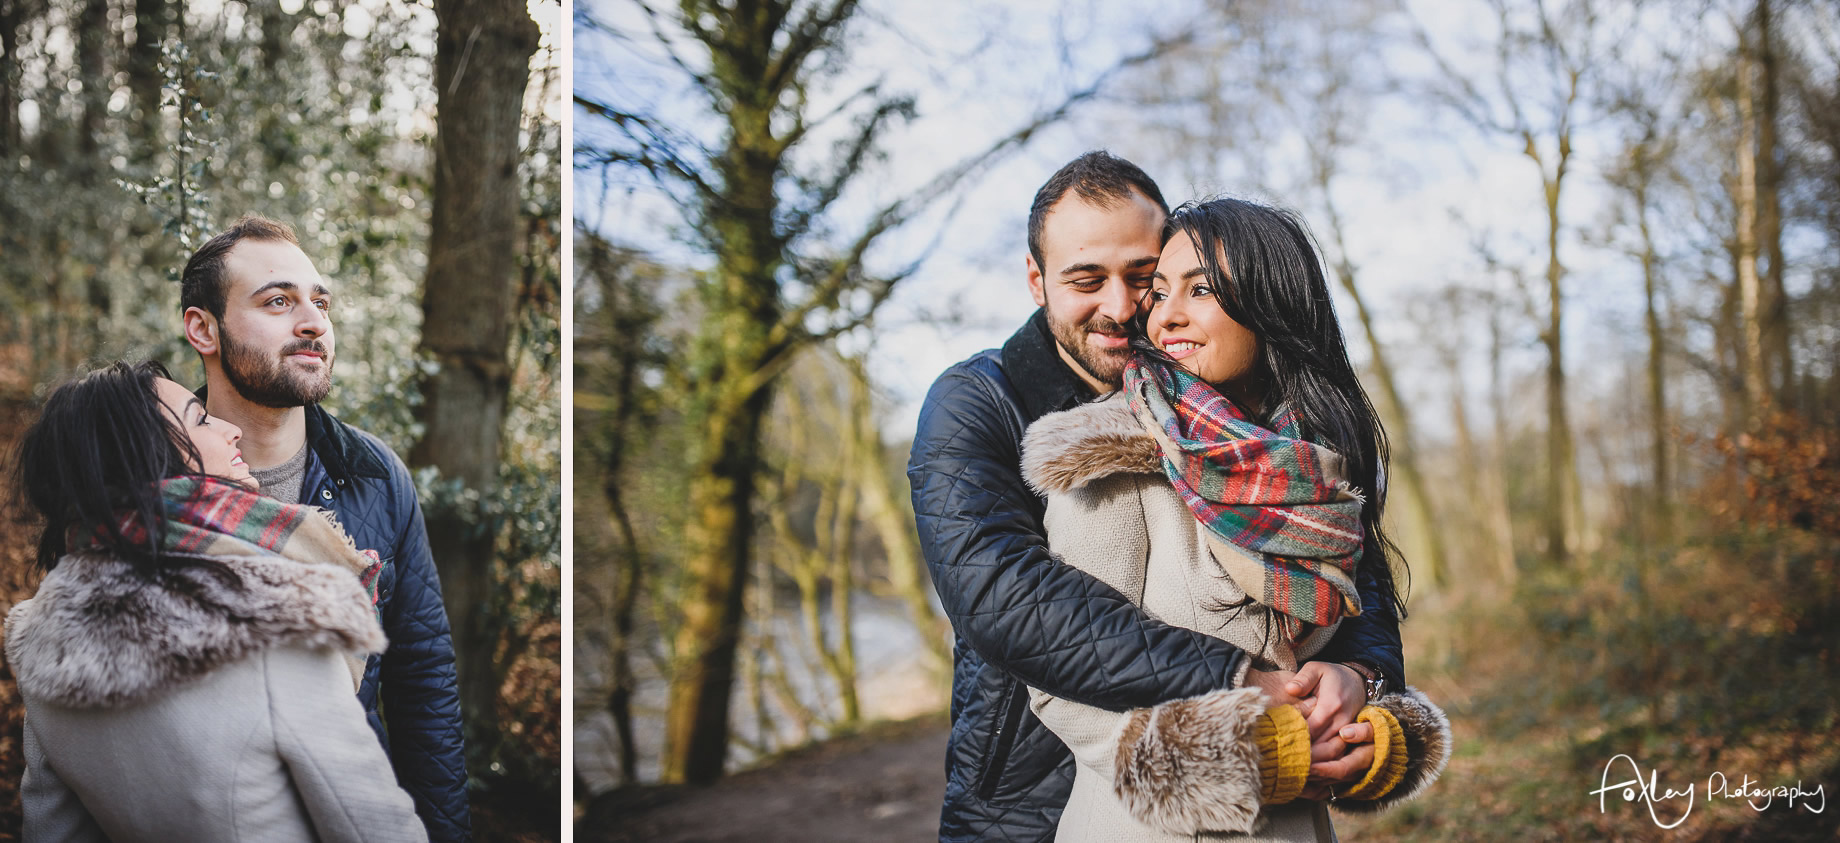 Trina and Luca's Pre-Wedding Shoot at Dinckley Riverside 014